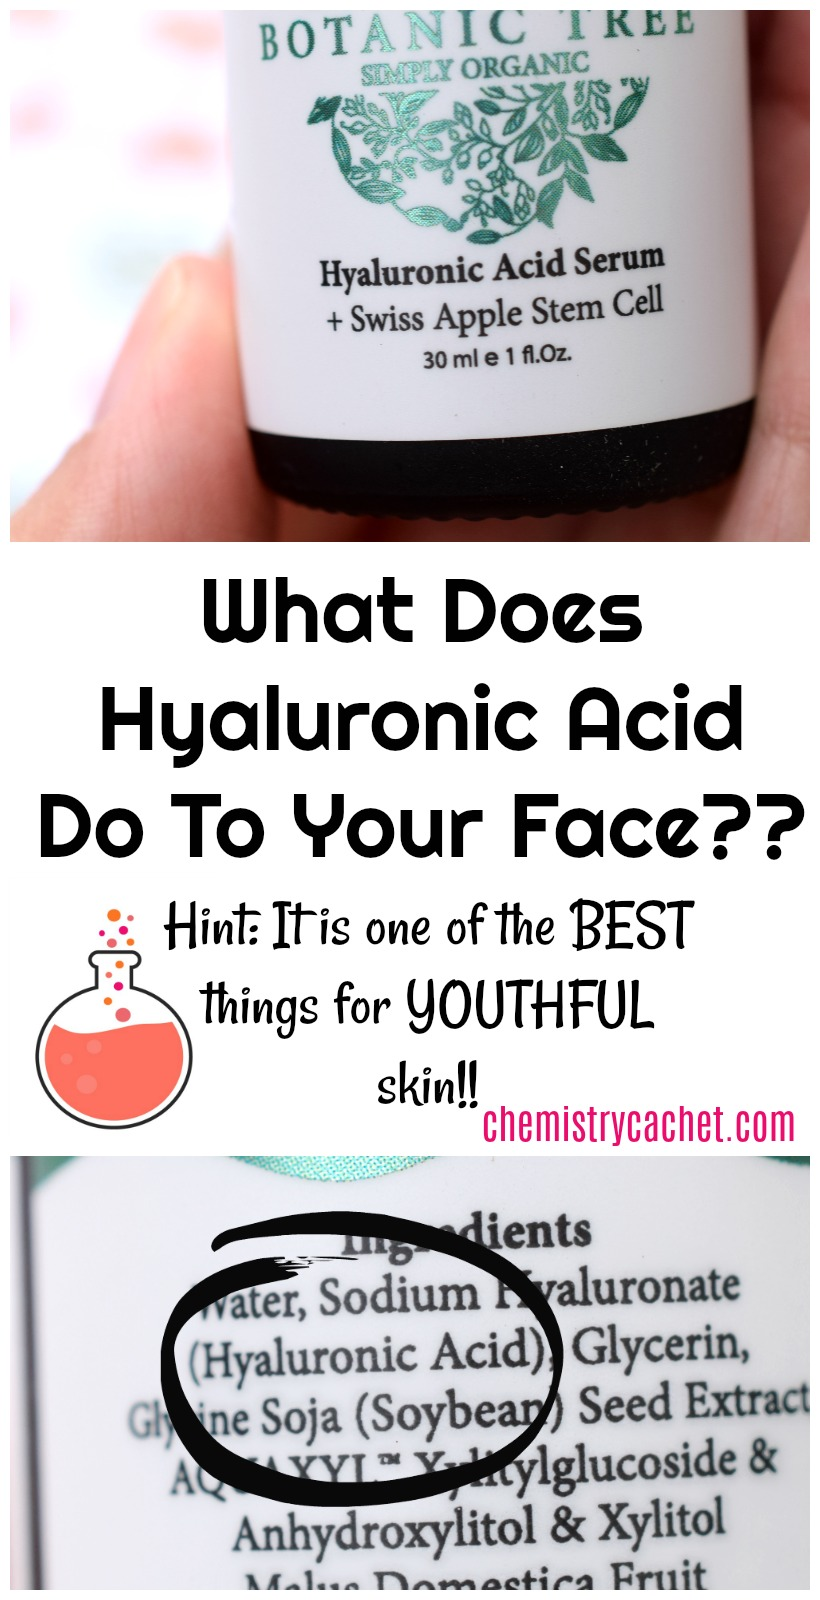 What Does Hyaluronic Acid Do To Your Face? Based on Science!